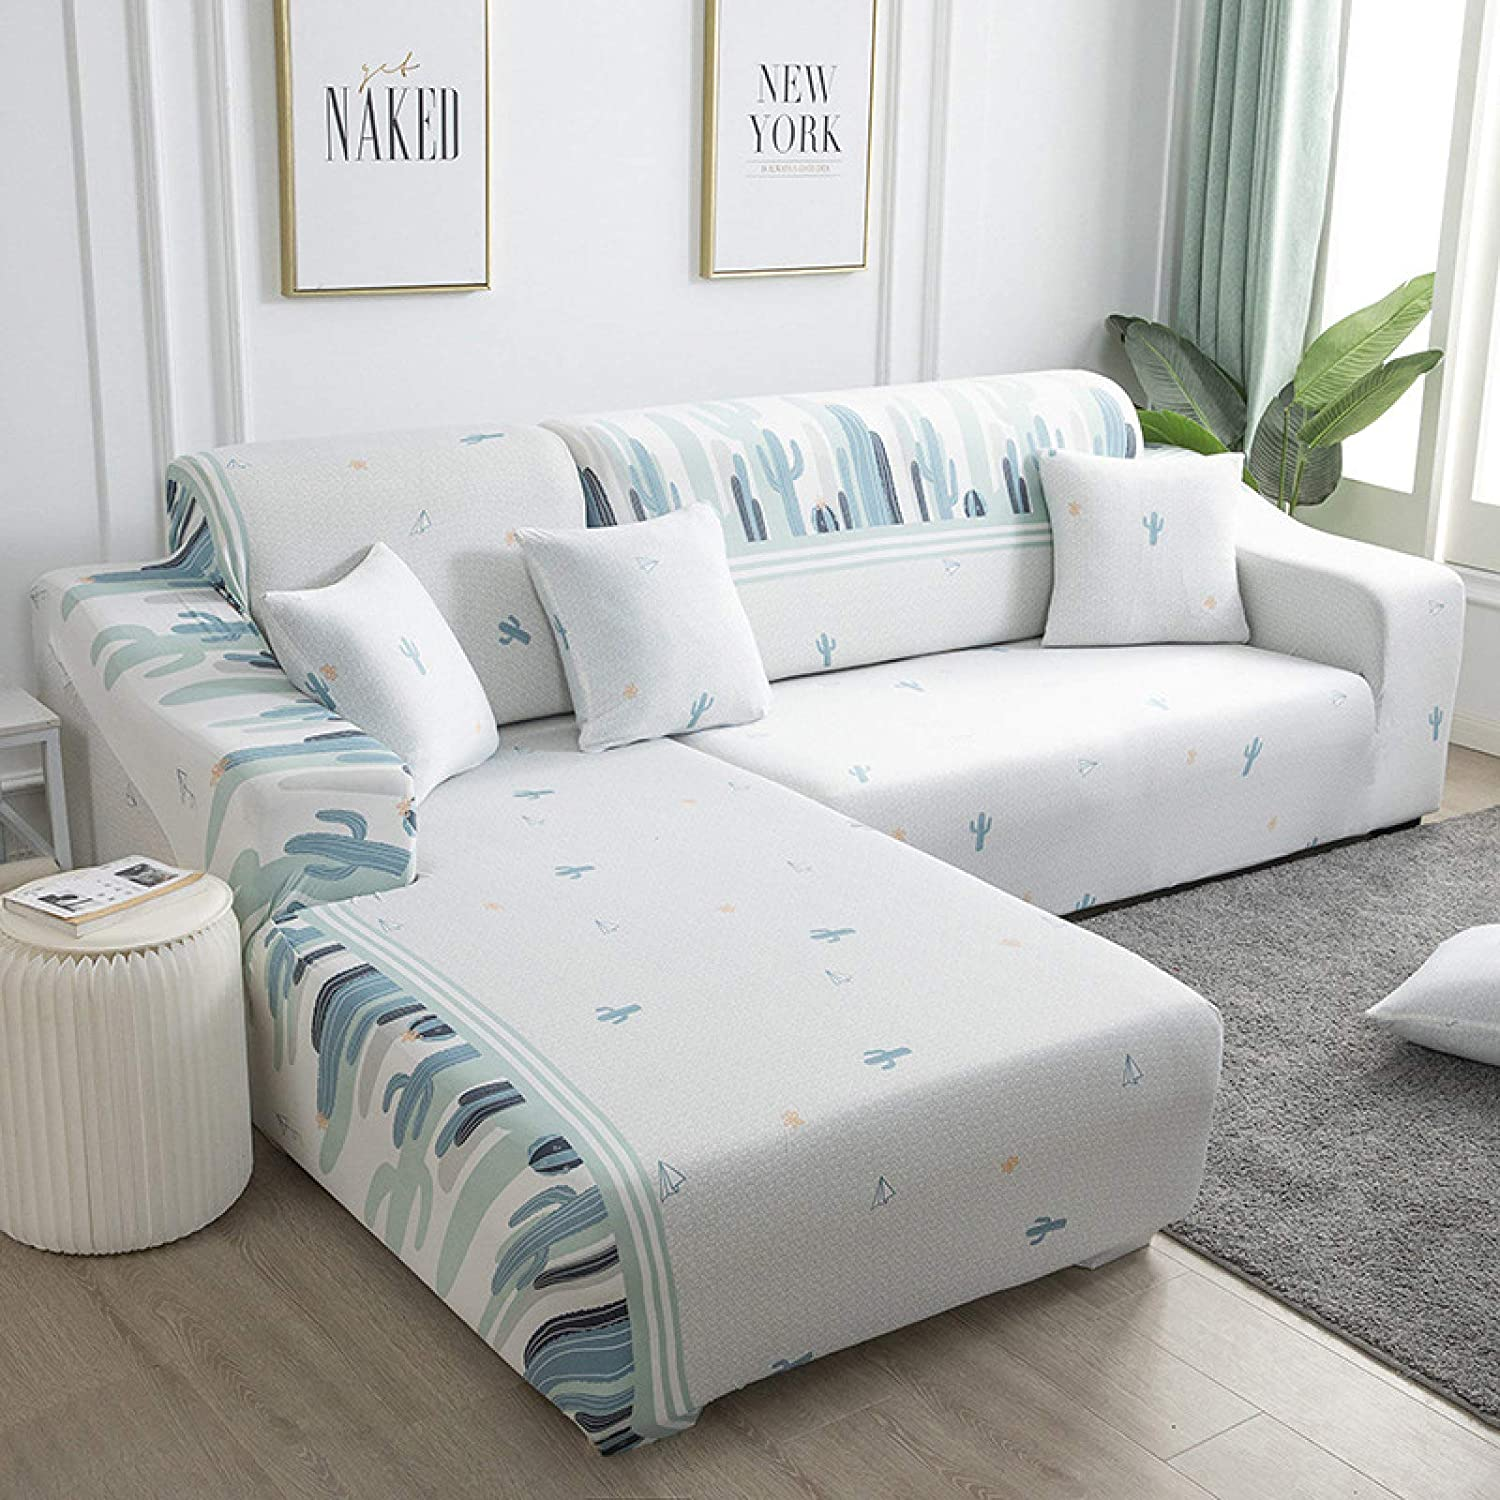 HUIJIE Sofa Slipcovers Bombing Ranking TOP7 free shipping Cover Stretch All-Inclusi